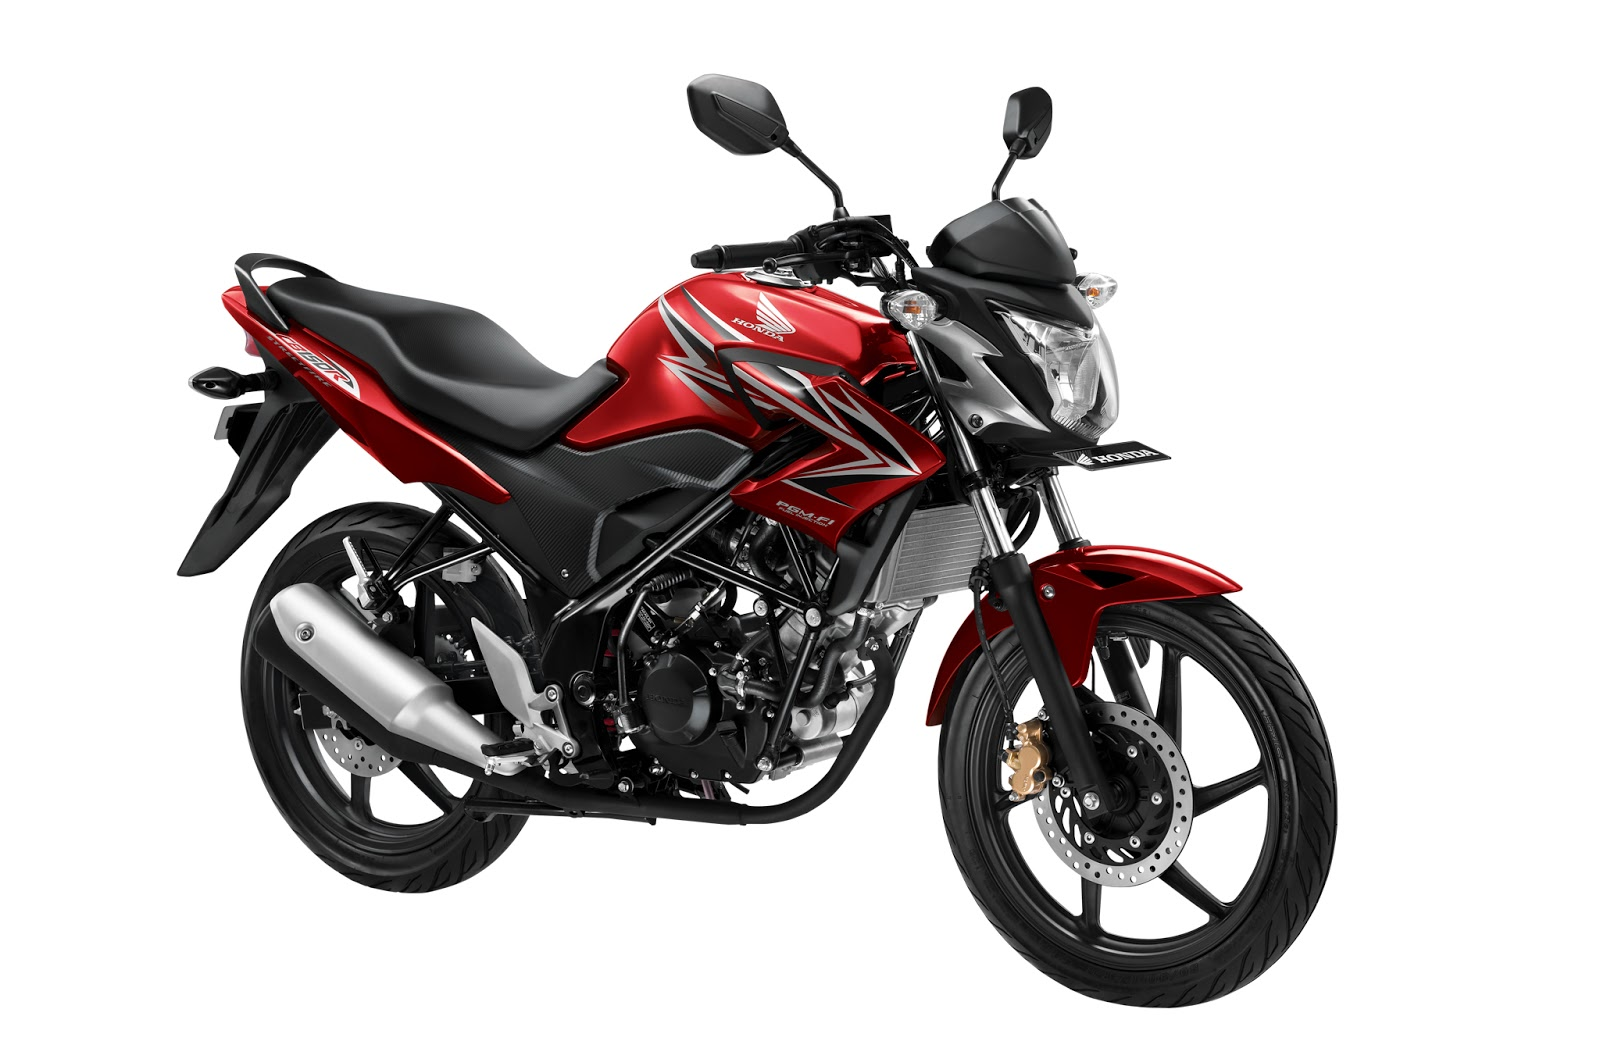 modifikasi cb150r modifikasi cb150r streetfire aksesoris cb150r modifikasi cb150r full fairing modifikasi motor